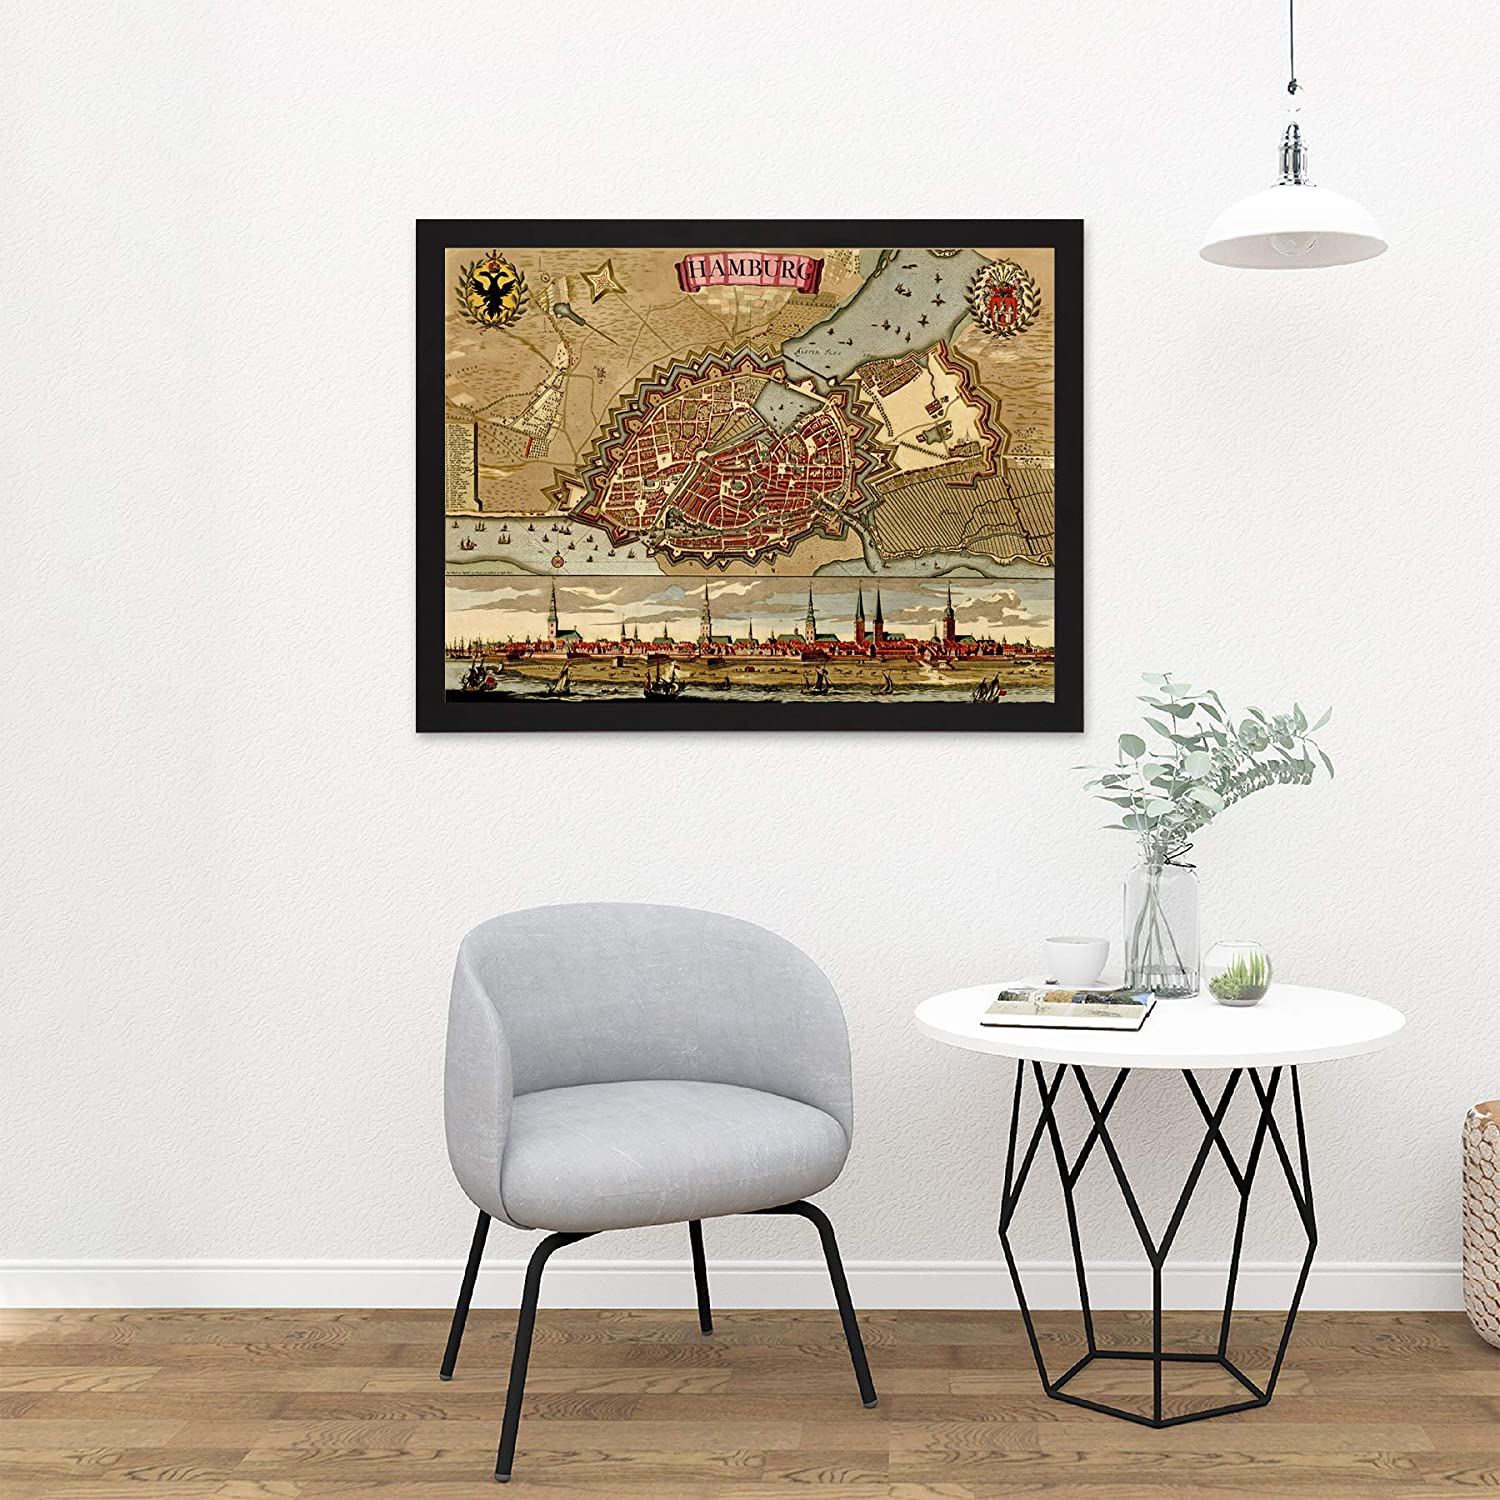 ART PRINT POSTER MAP OLD PLAN CITY HAMBURG GERMANY CITYSCAPE CREST LFMP0839